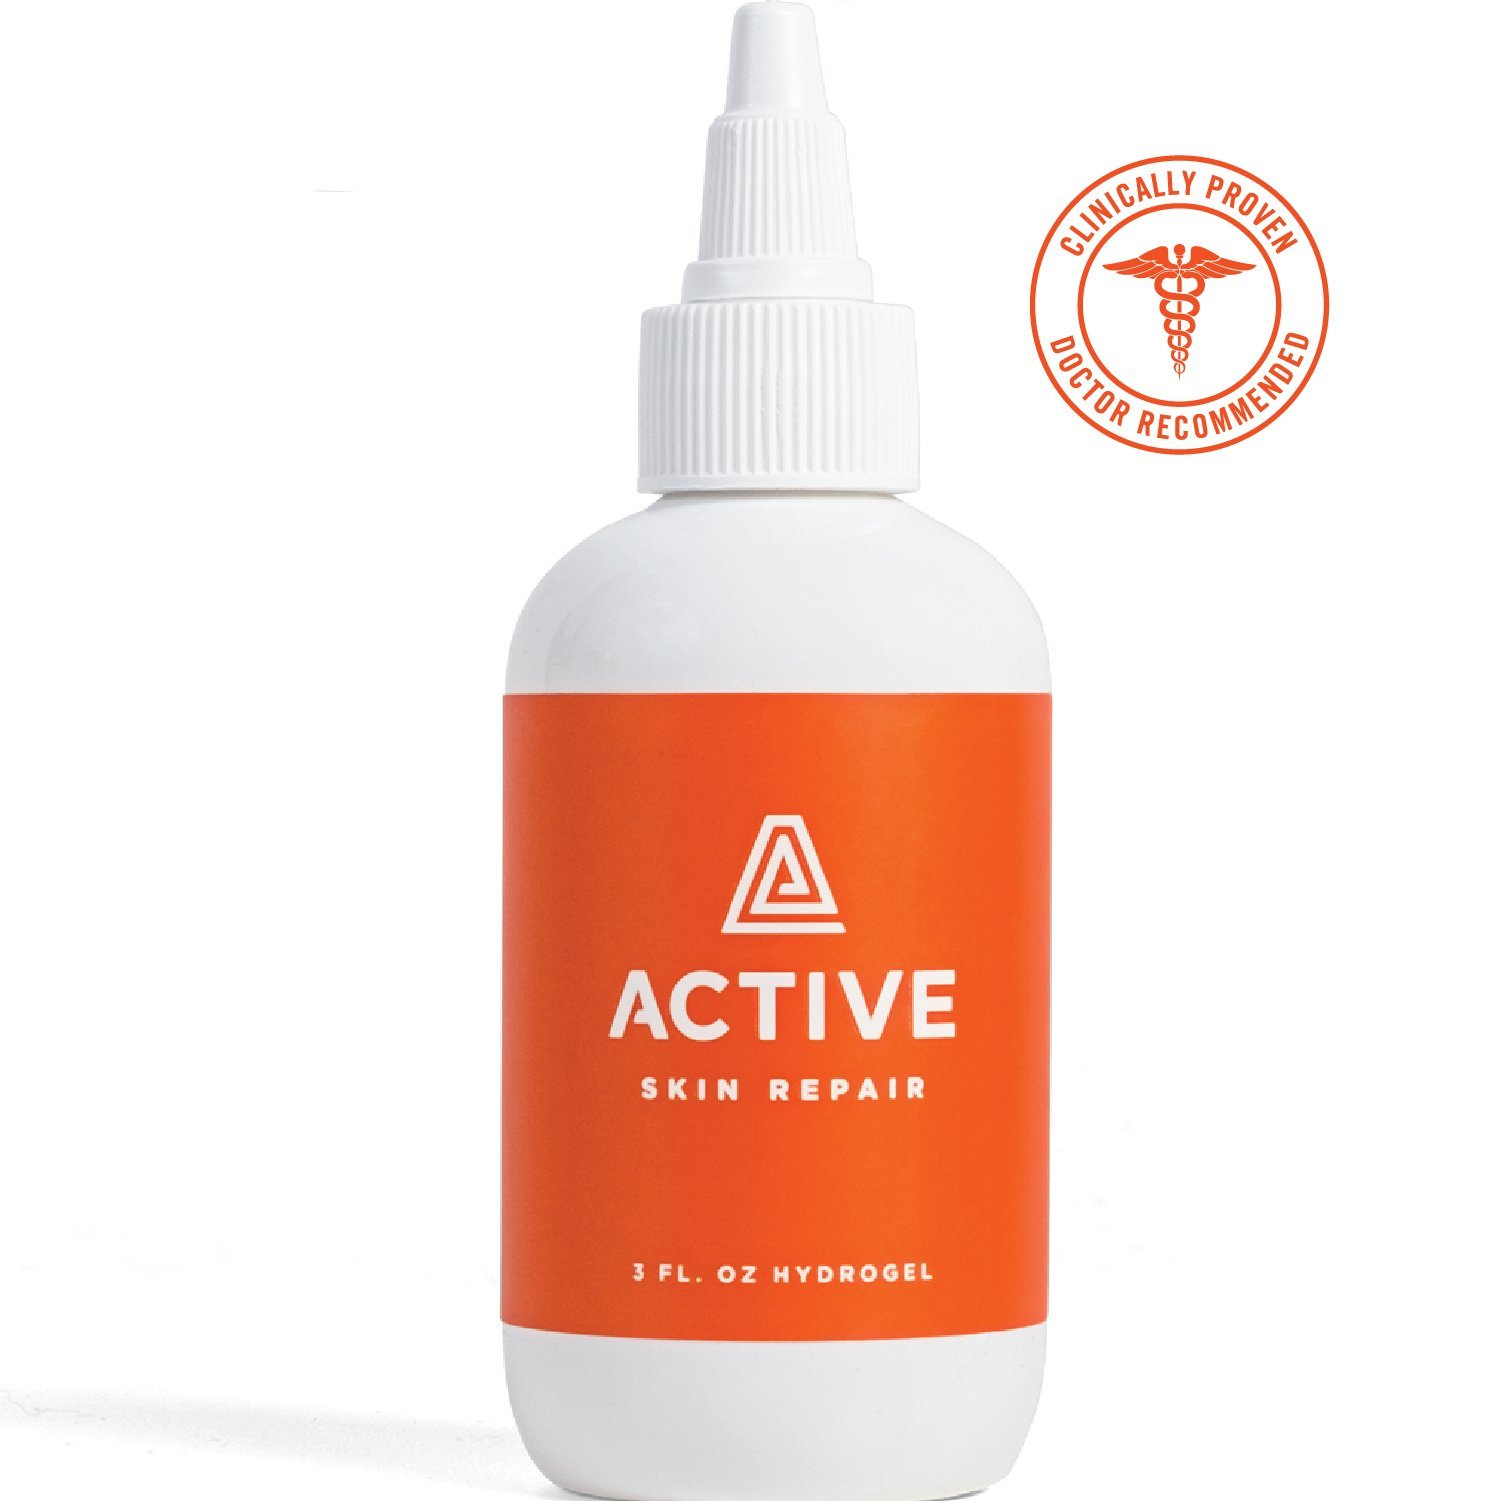 ACTIVE Skin Repair Hydrogel – Natural Antibacterial Healing Ointment & Wound Gel for cuts, scrapes, rashes, sunburns and other skin irritations (3oz)